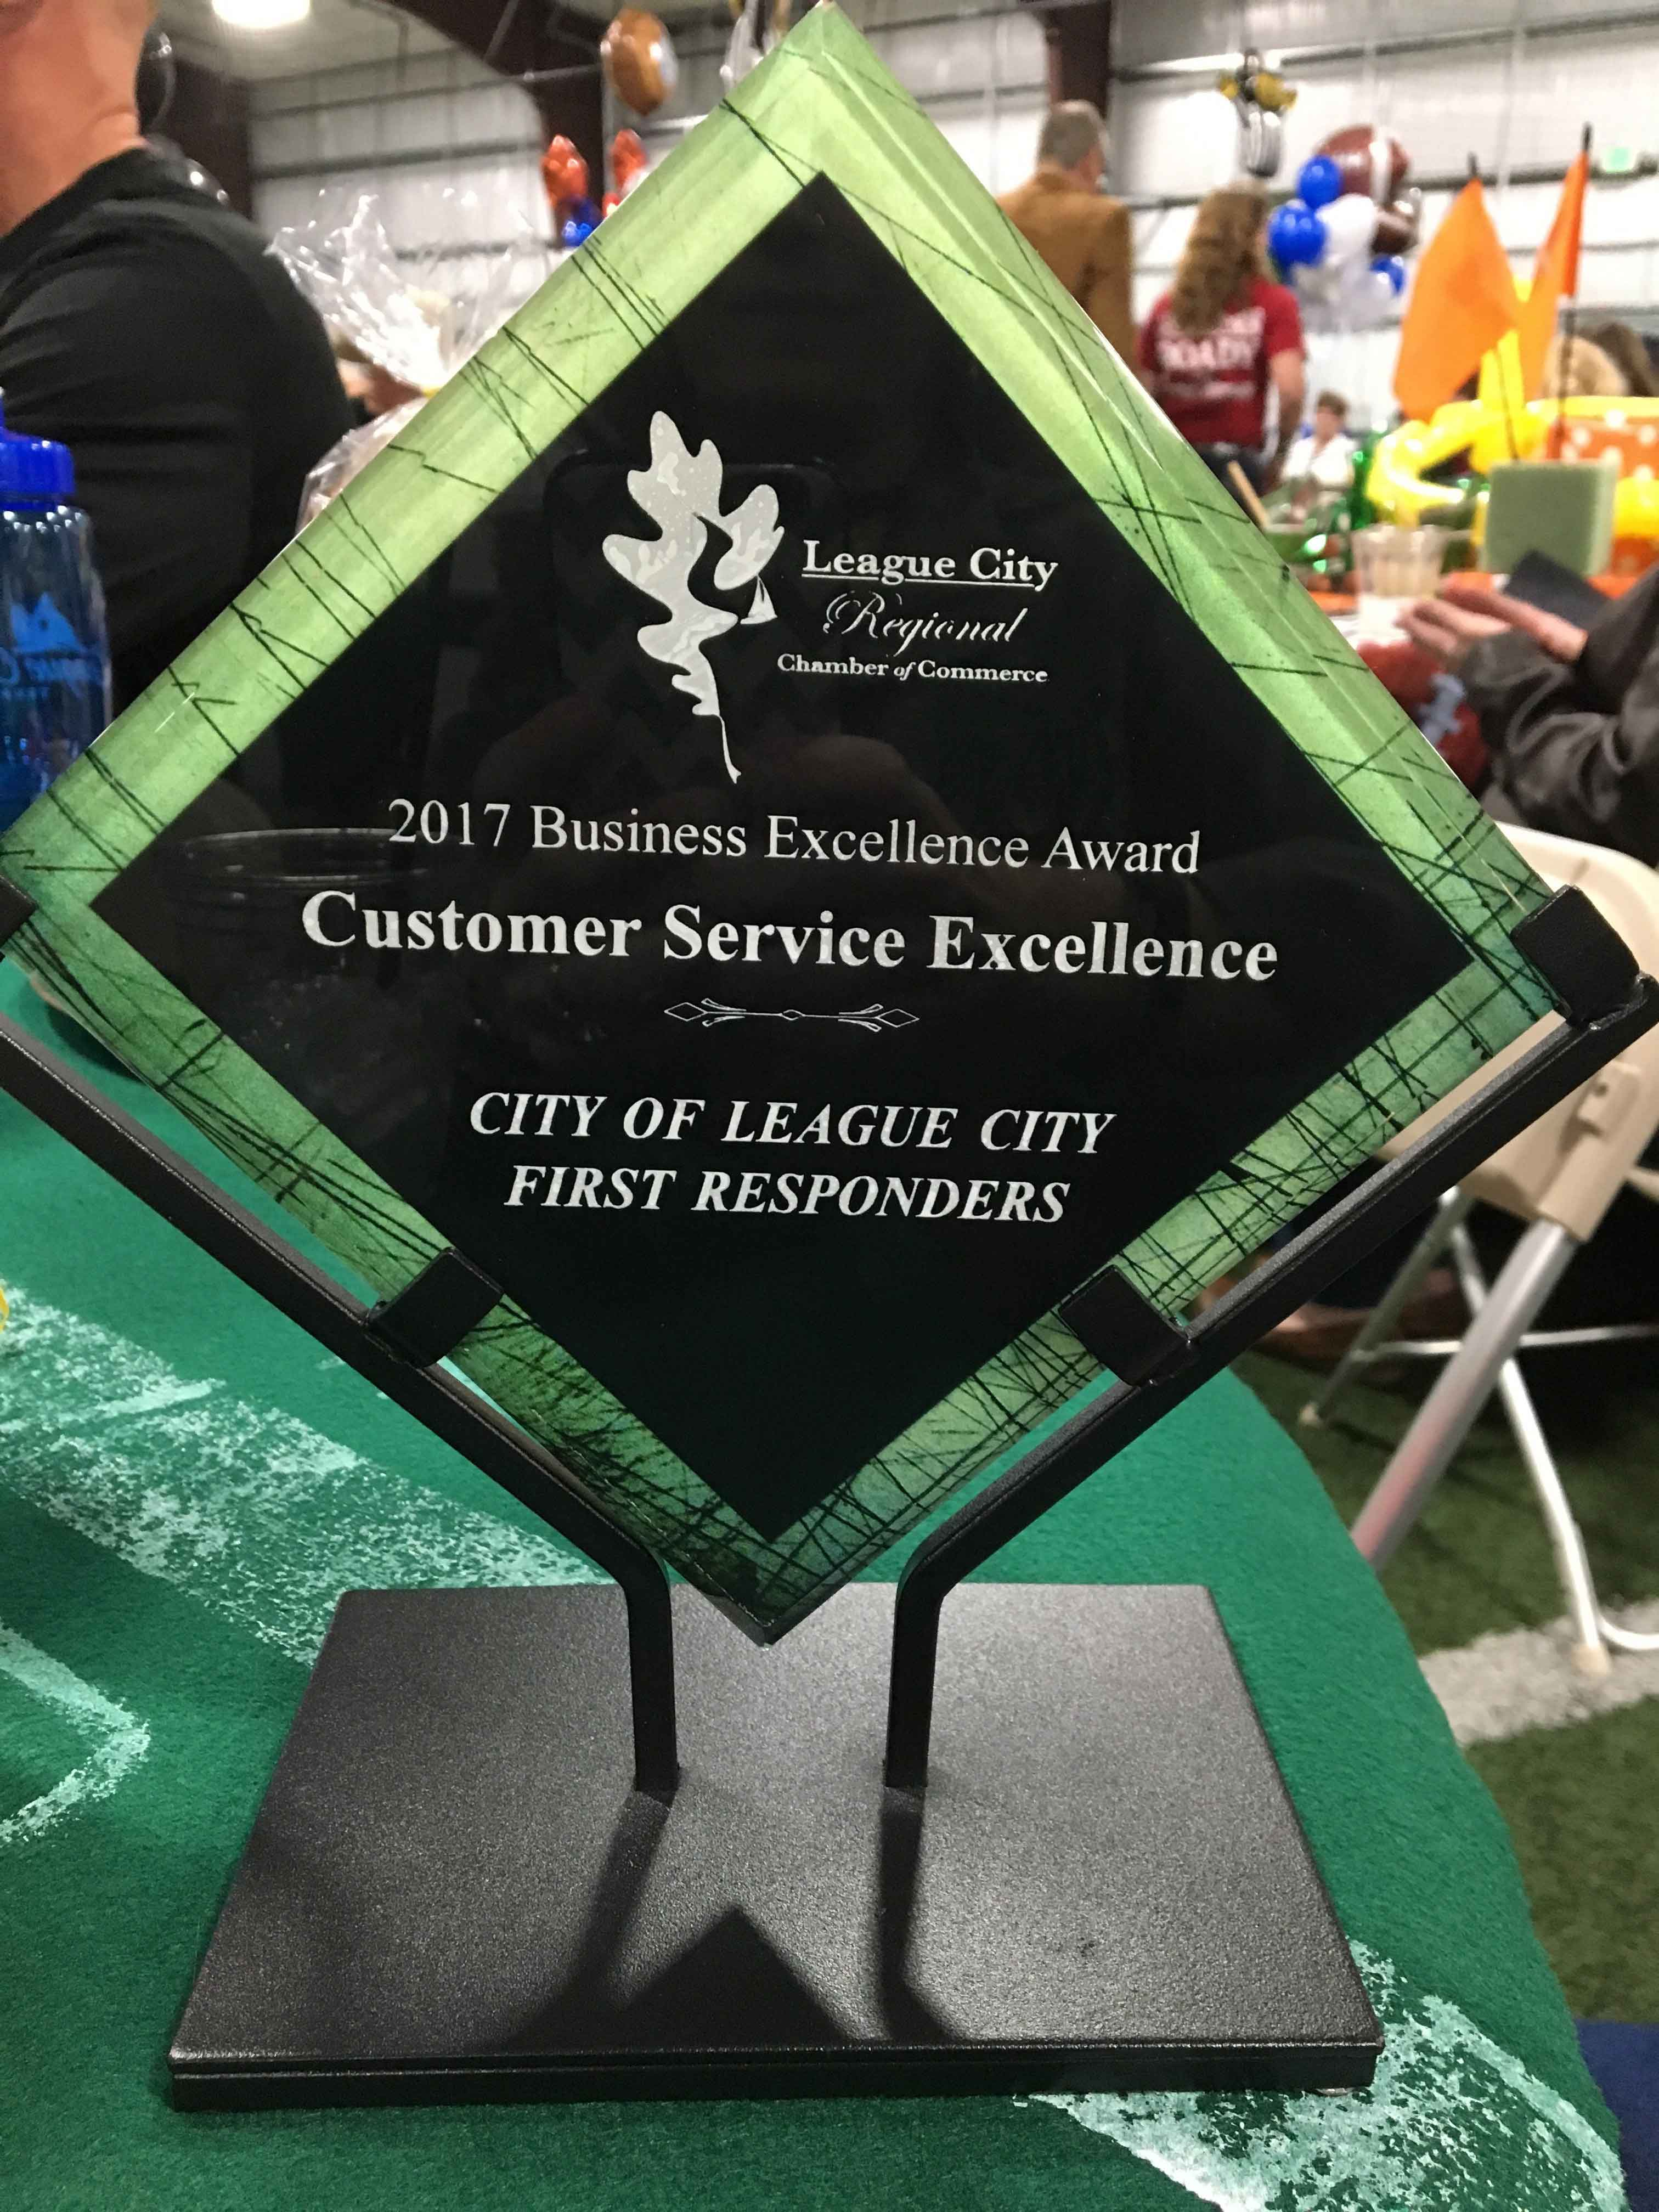 League City Regional Chamber of Commerce Award